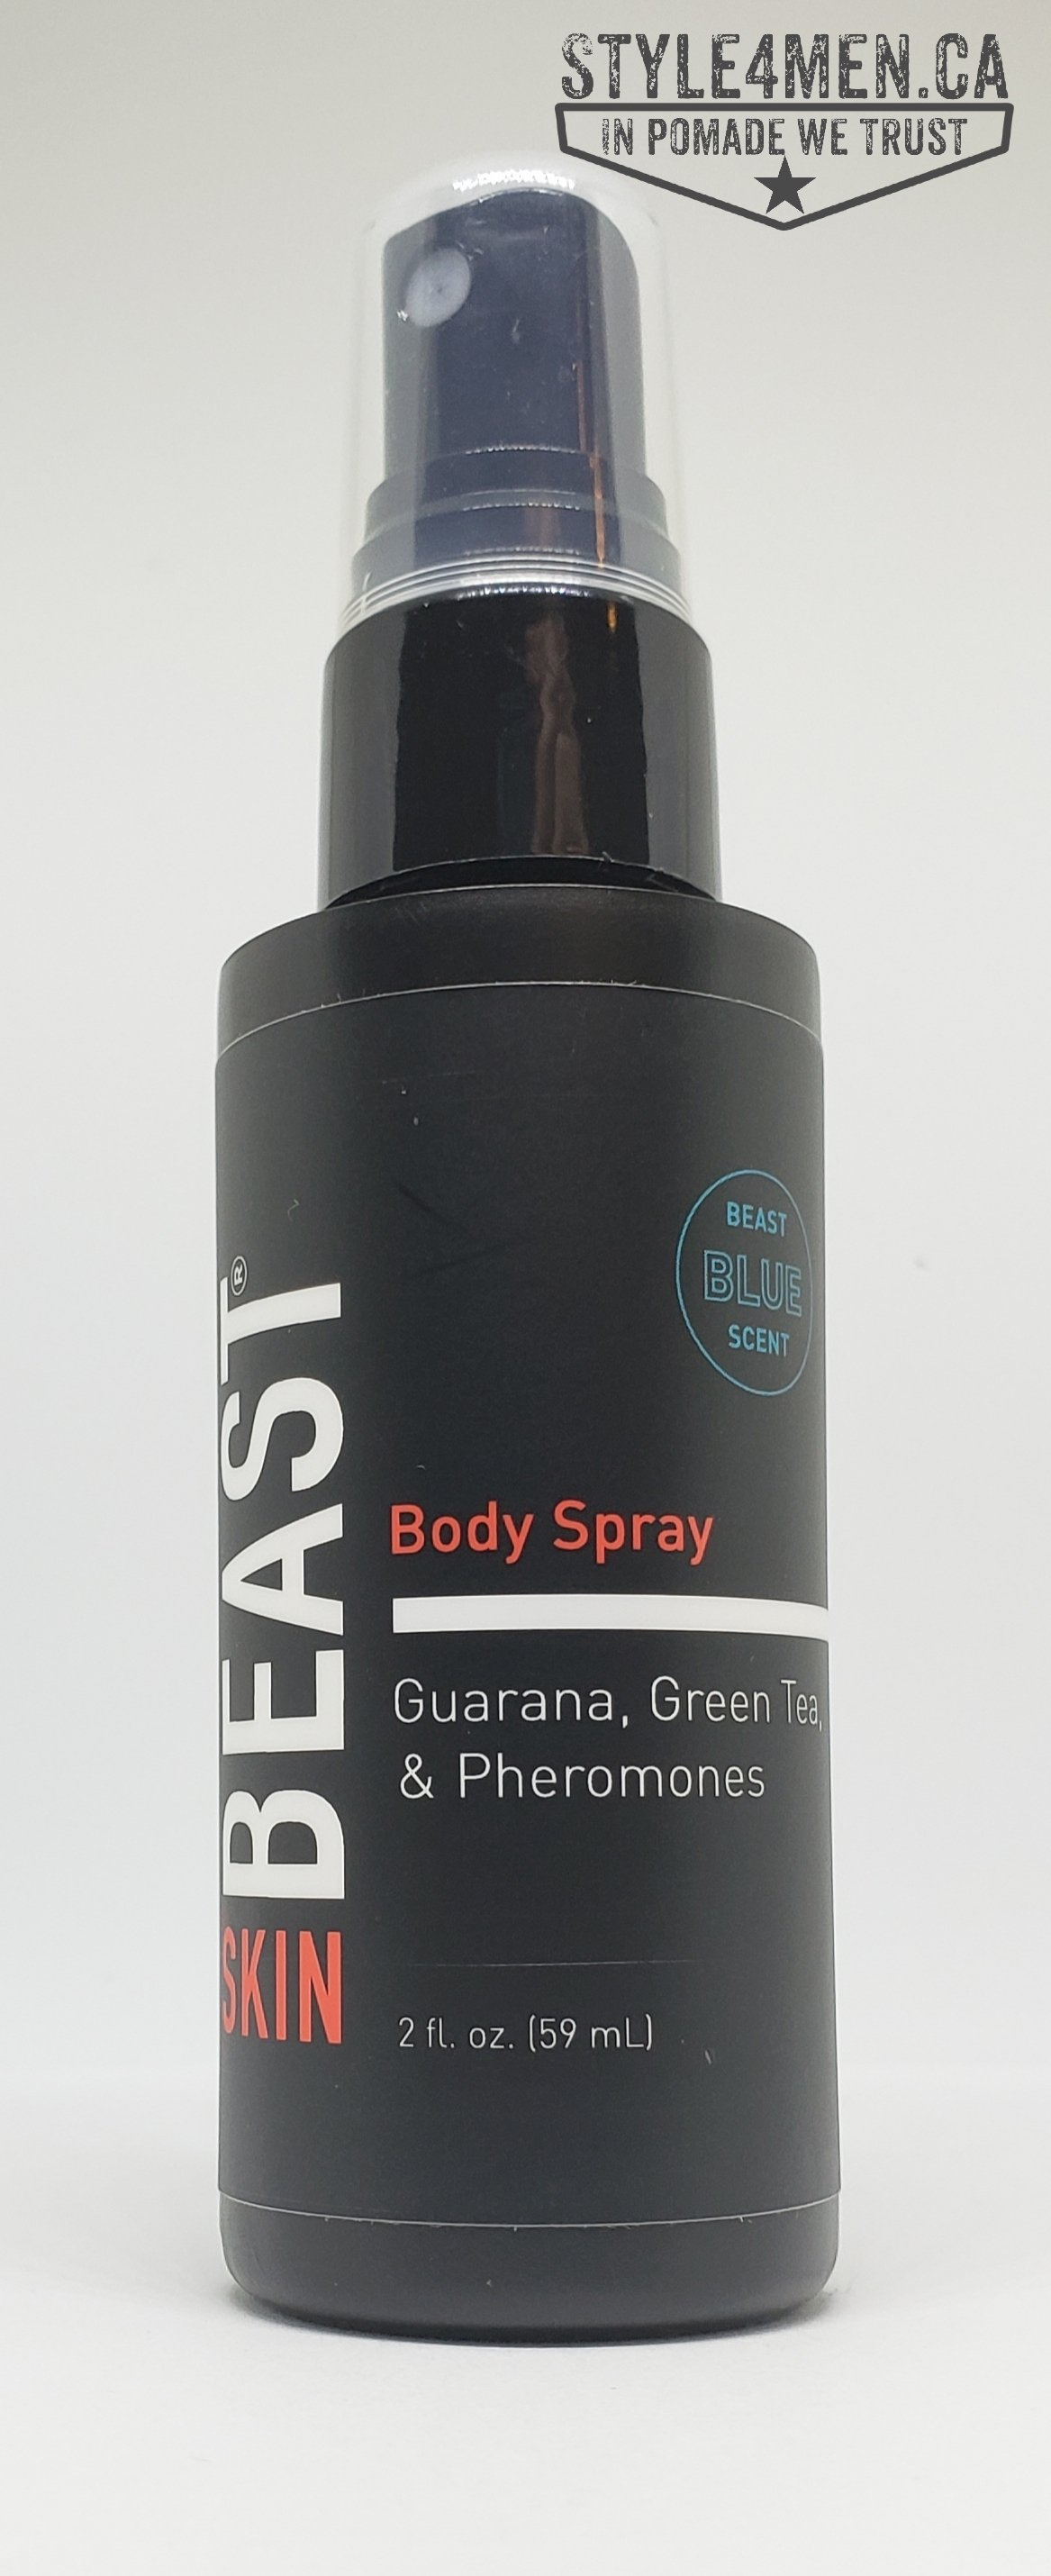 Tame the Beast Body Spray